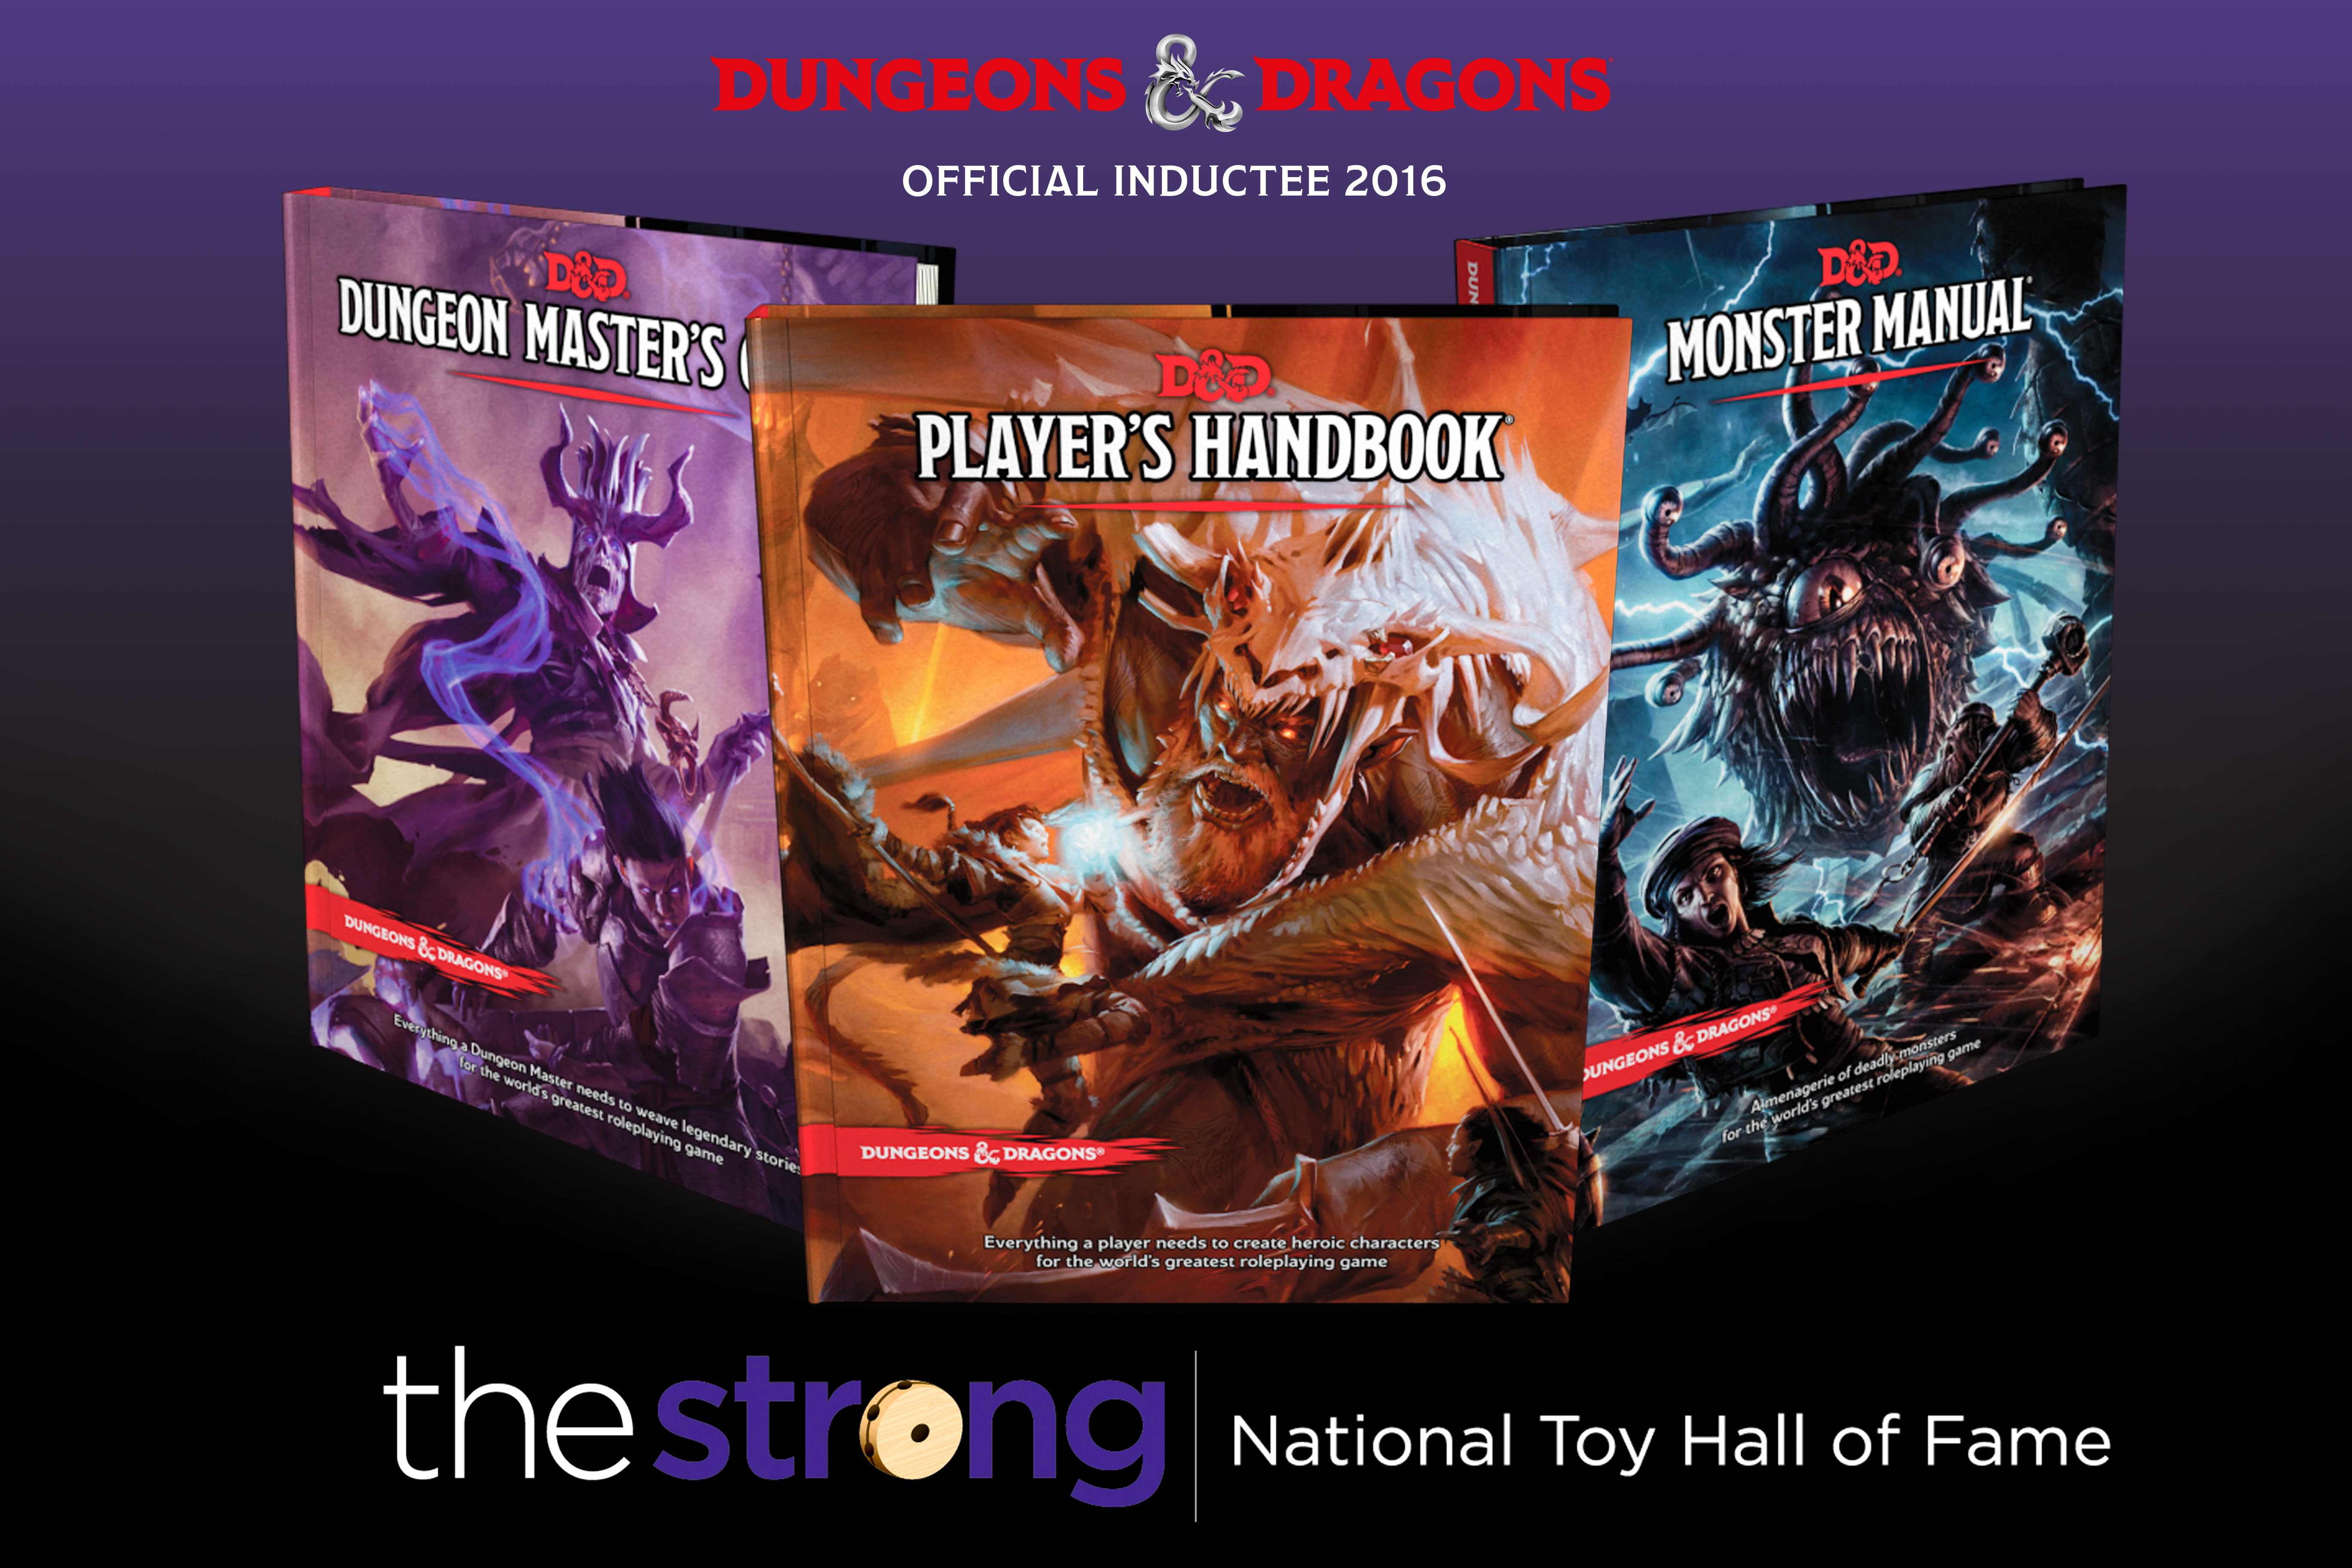 dungeons-and-dragons-hall-of-fame